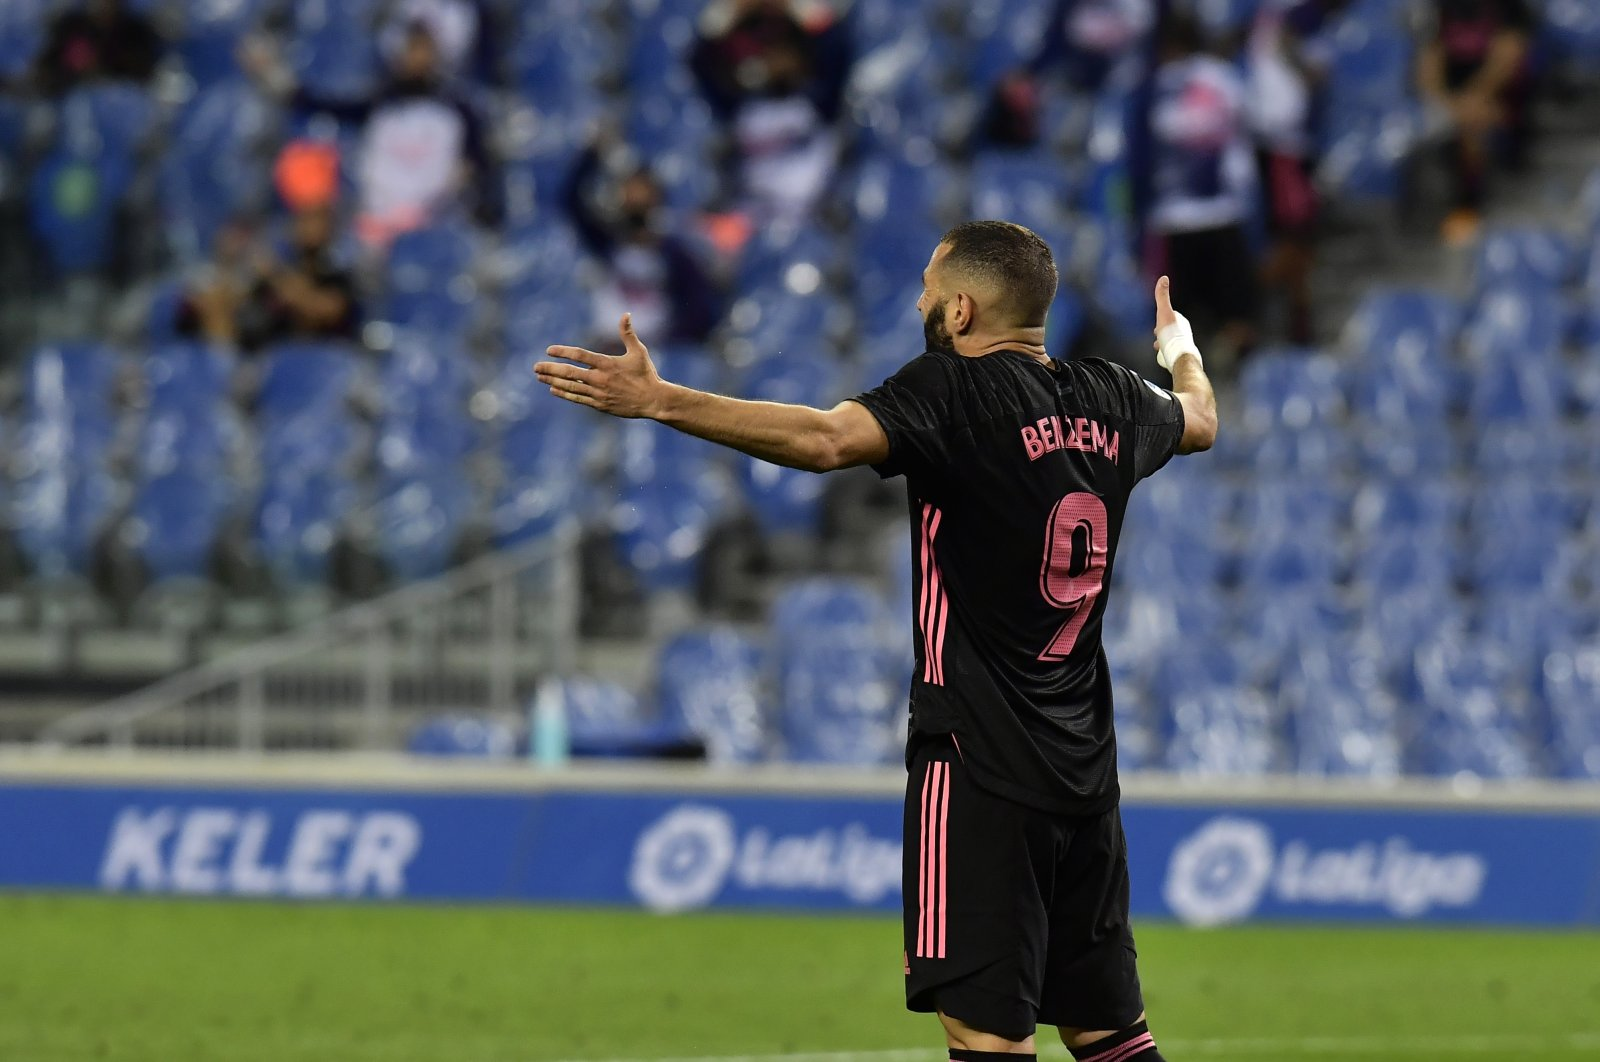 Real Madrid's Karim Benzema reacts during a La Liga match against Real Sociedad, in San Sebastian, Spain, Sept. 20, 2020. (AP Photo)